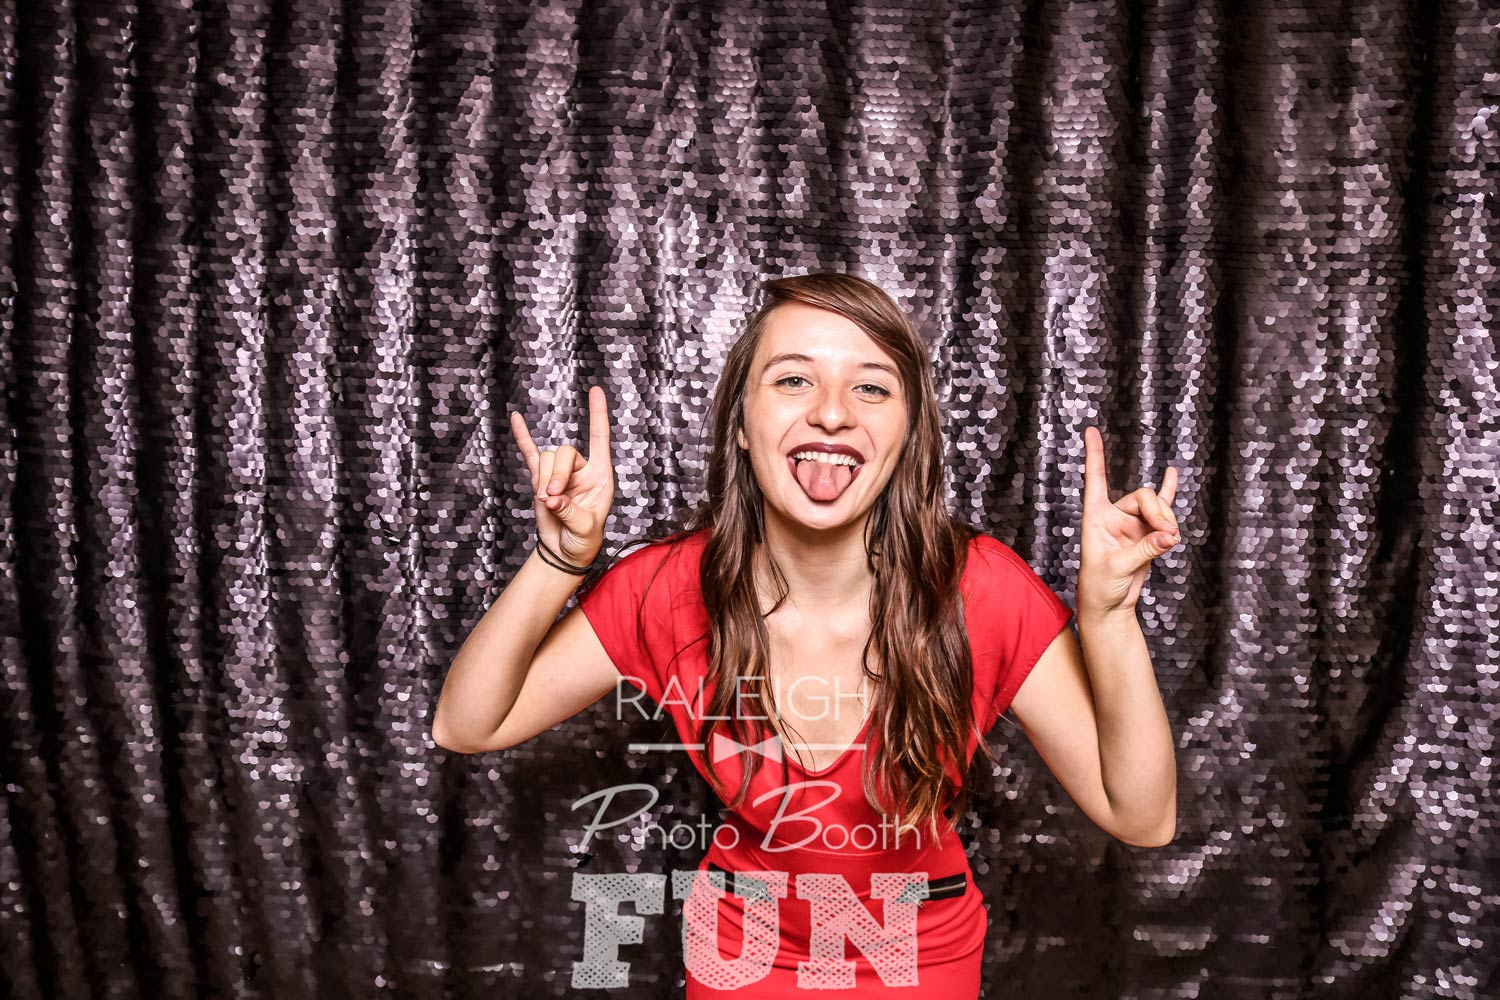 Black-Sequin-Raleigh-Photo-Booth-3